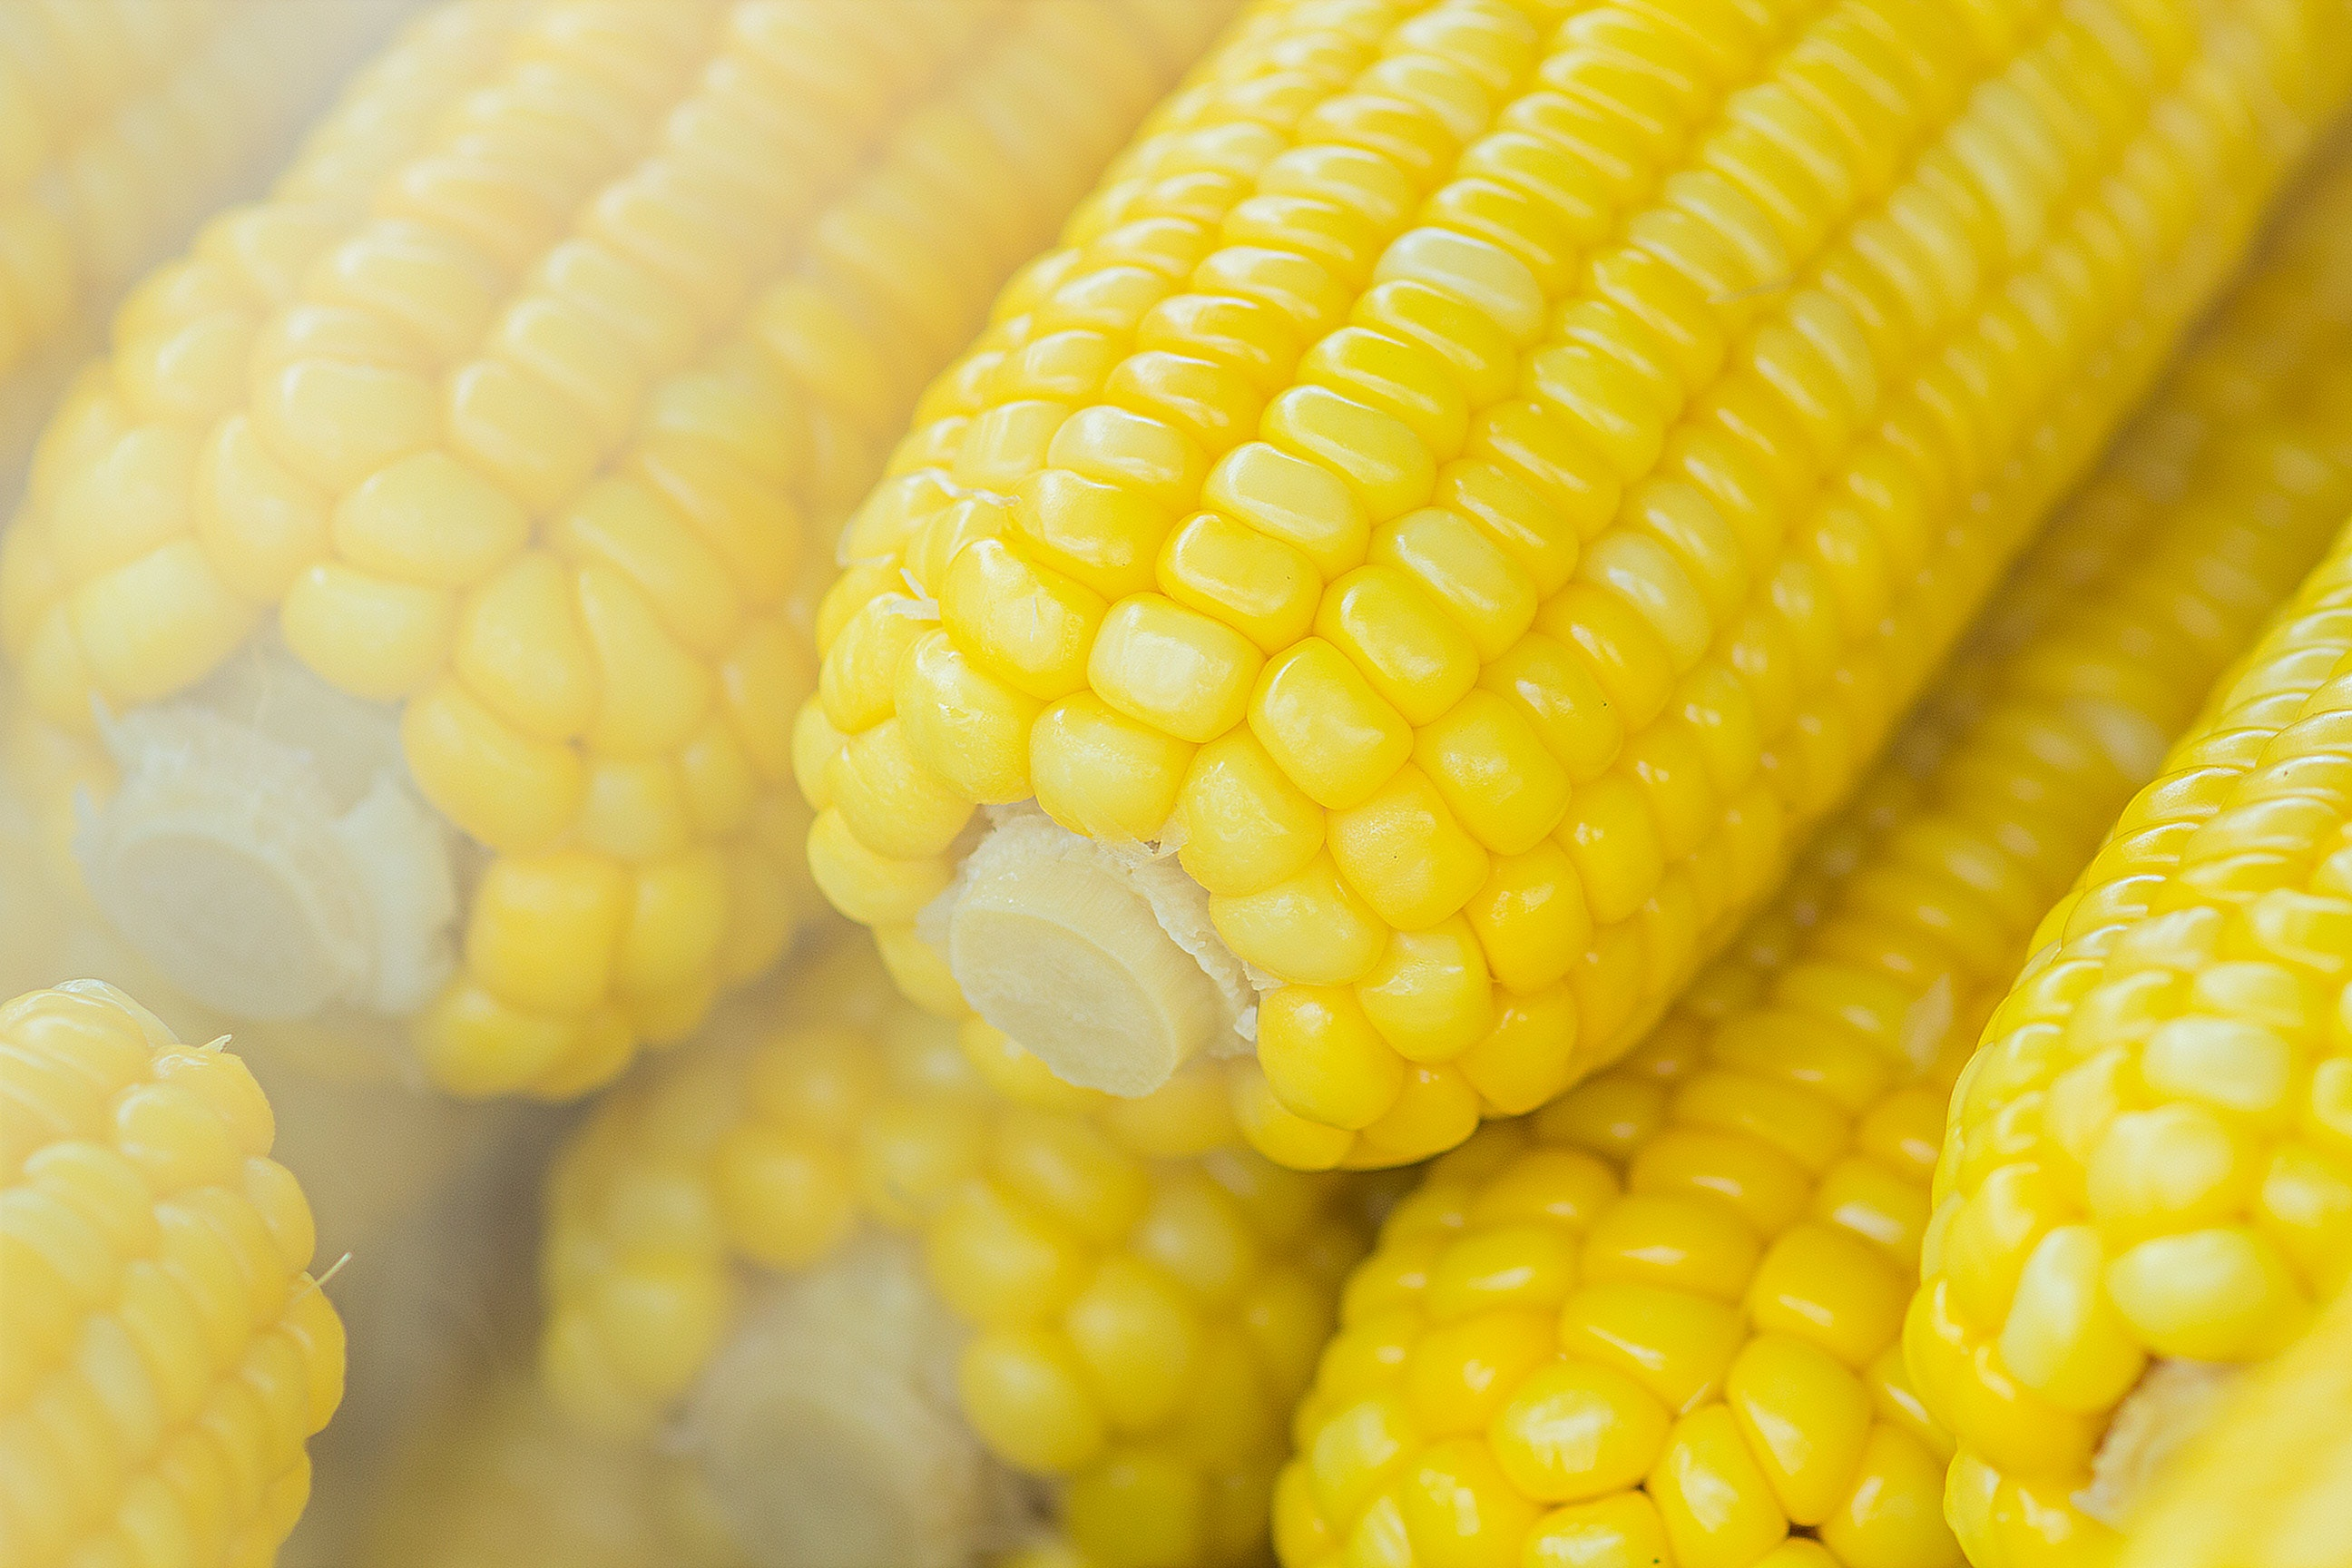 blur-close-up-corn-603030